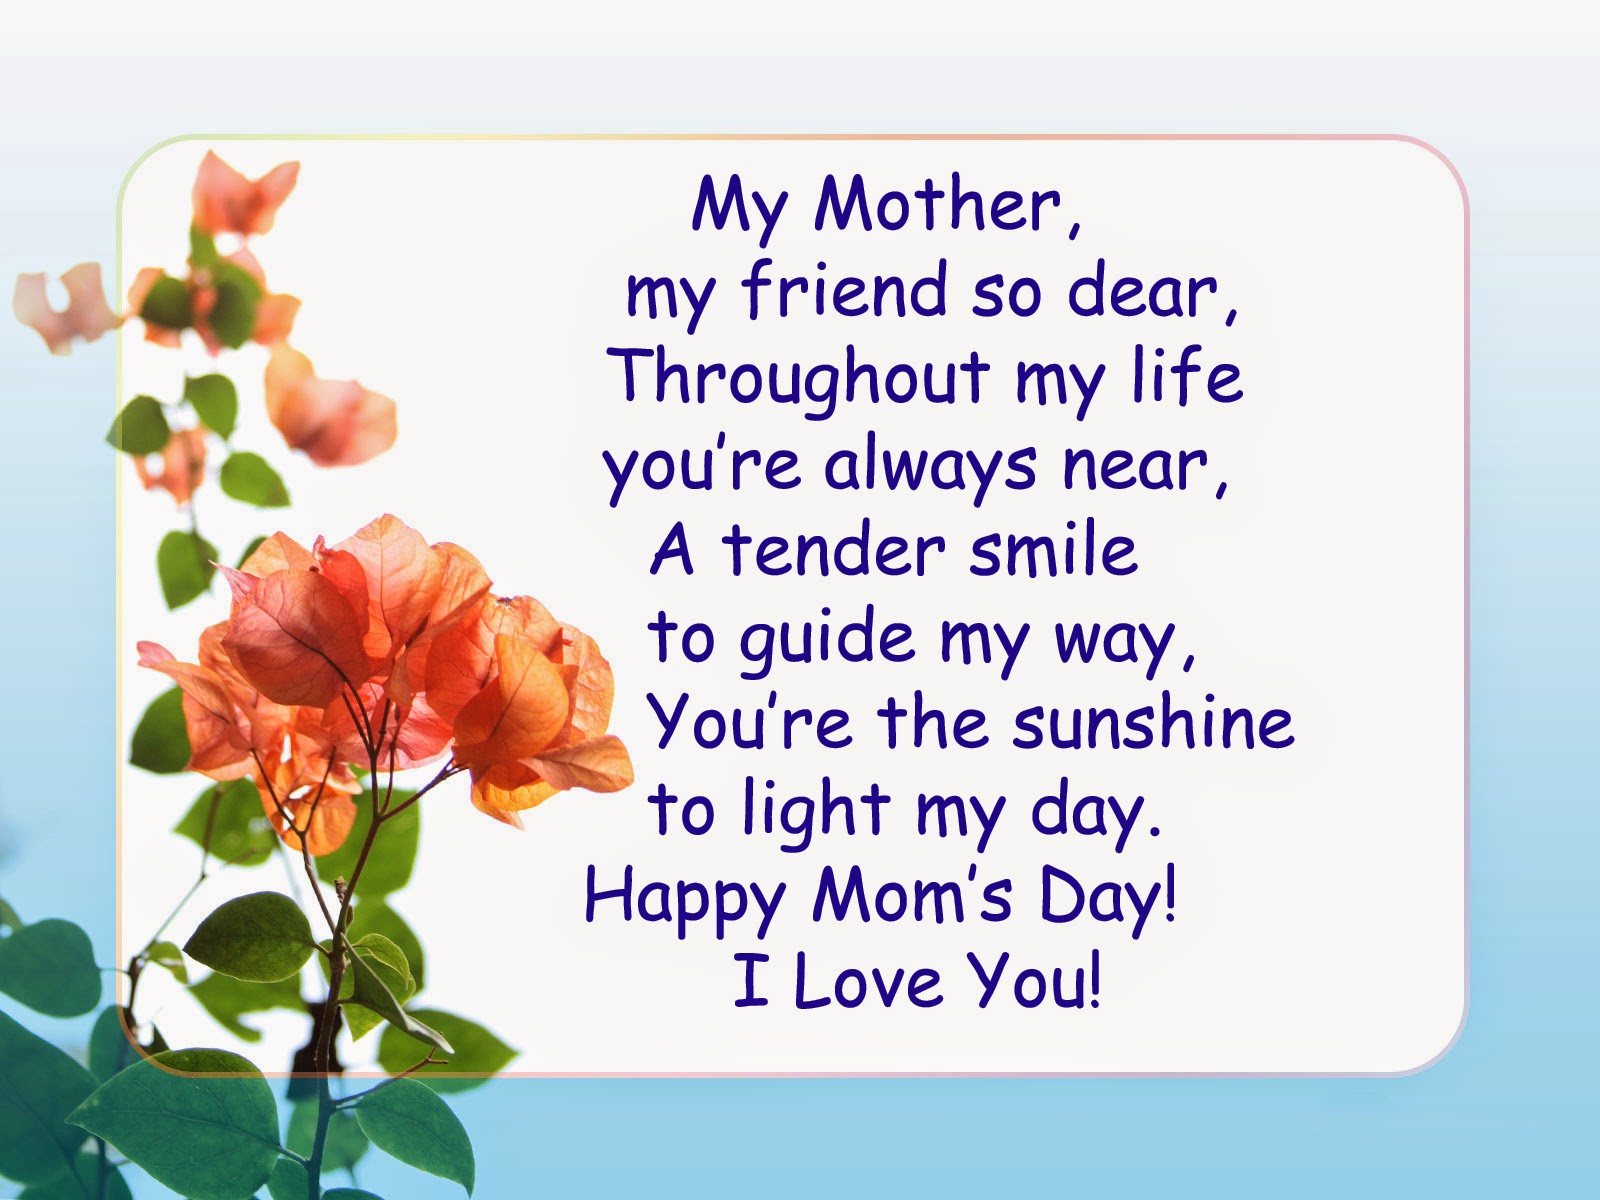 Mothers day ideas gift poems cards wishes and quotes for Mothers day cards from preschoolers